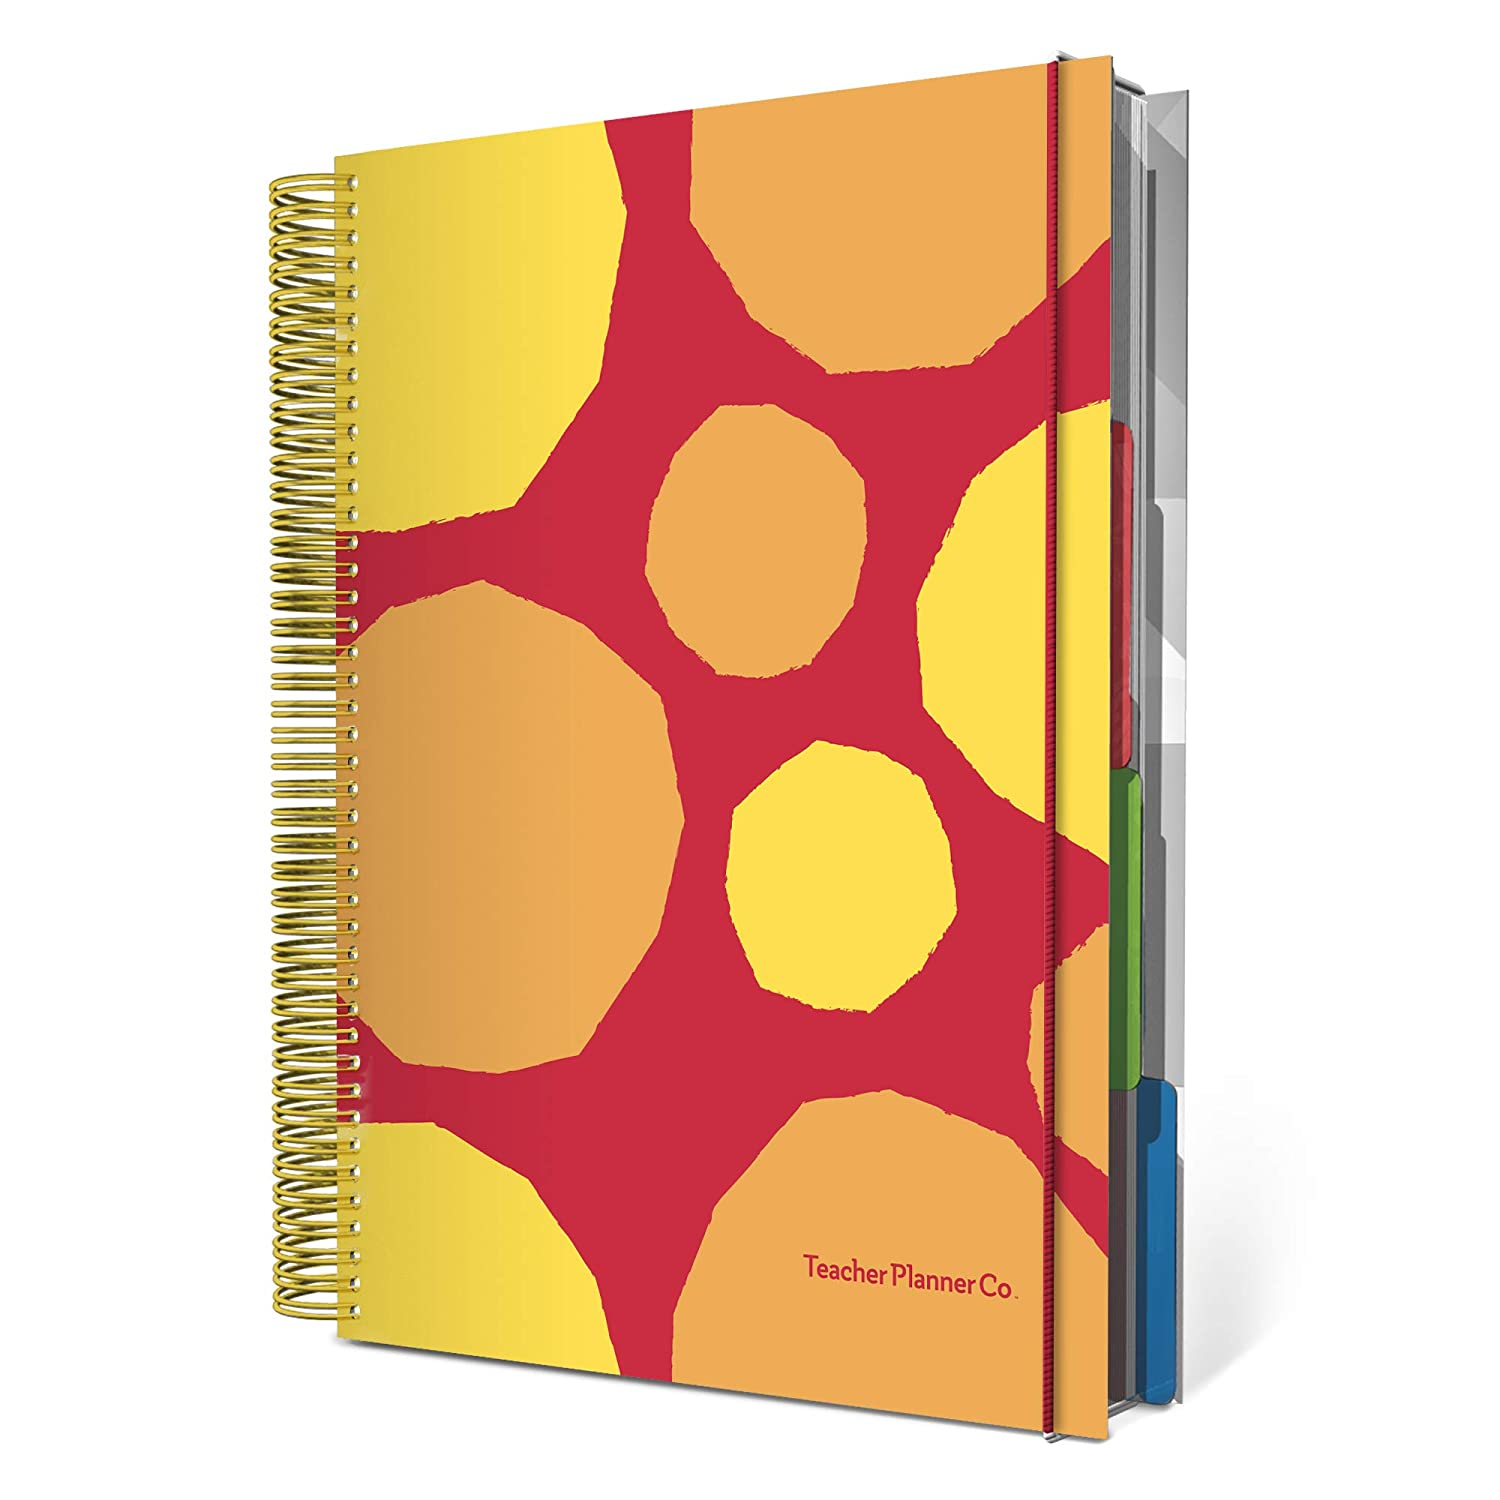 Gold Marble 6 Period Teacher Planner 2019-20 Special Edition